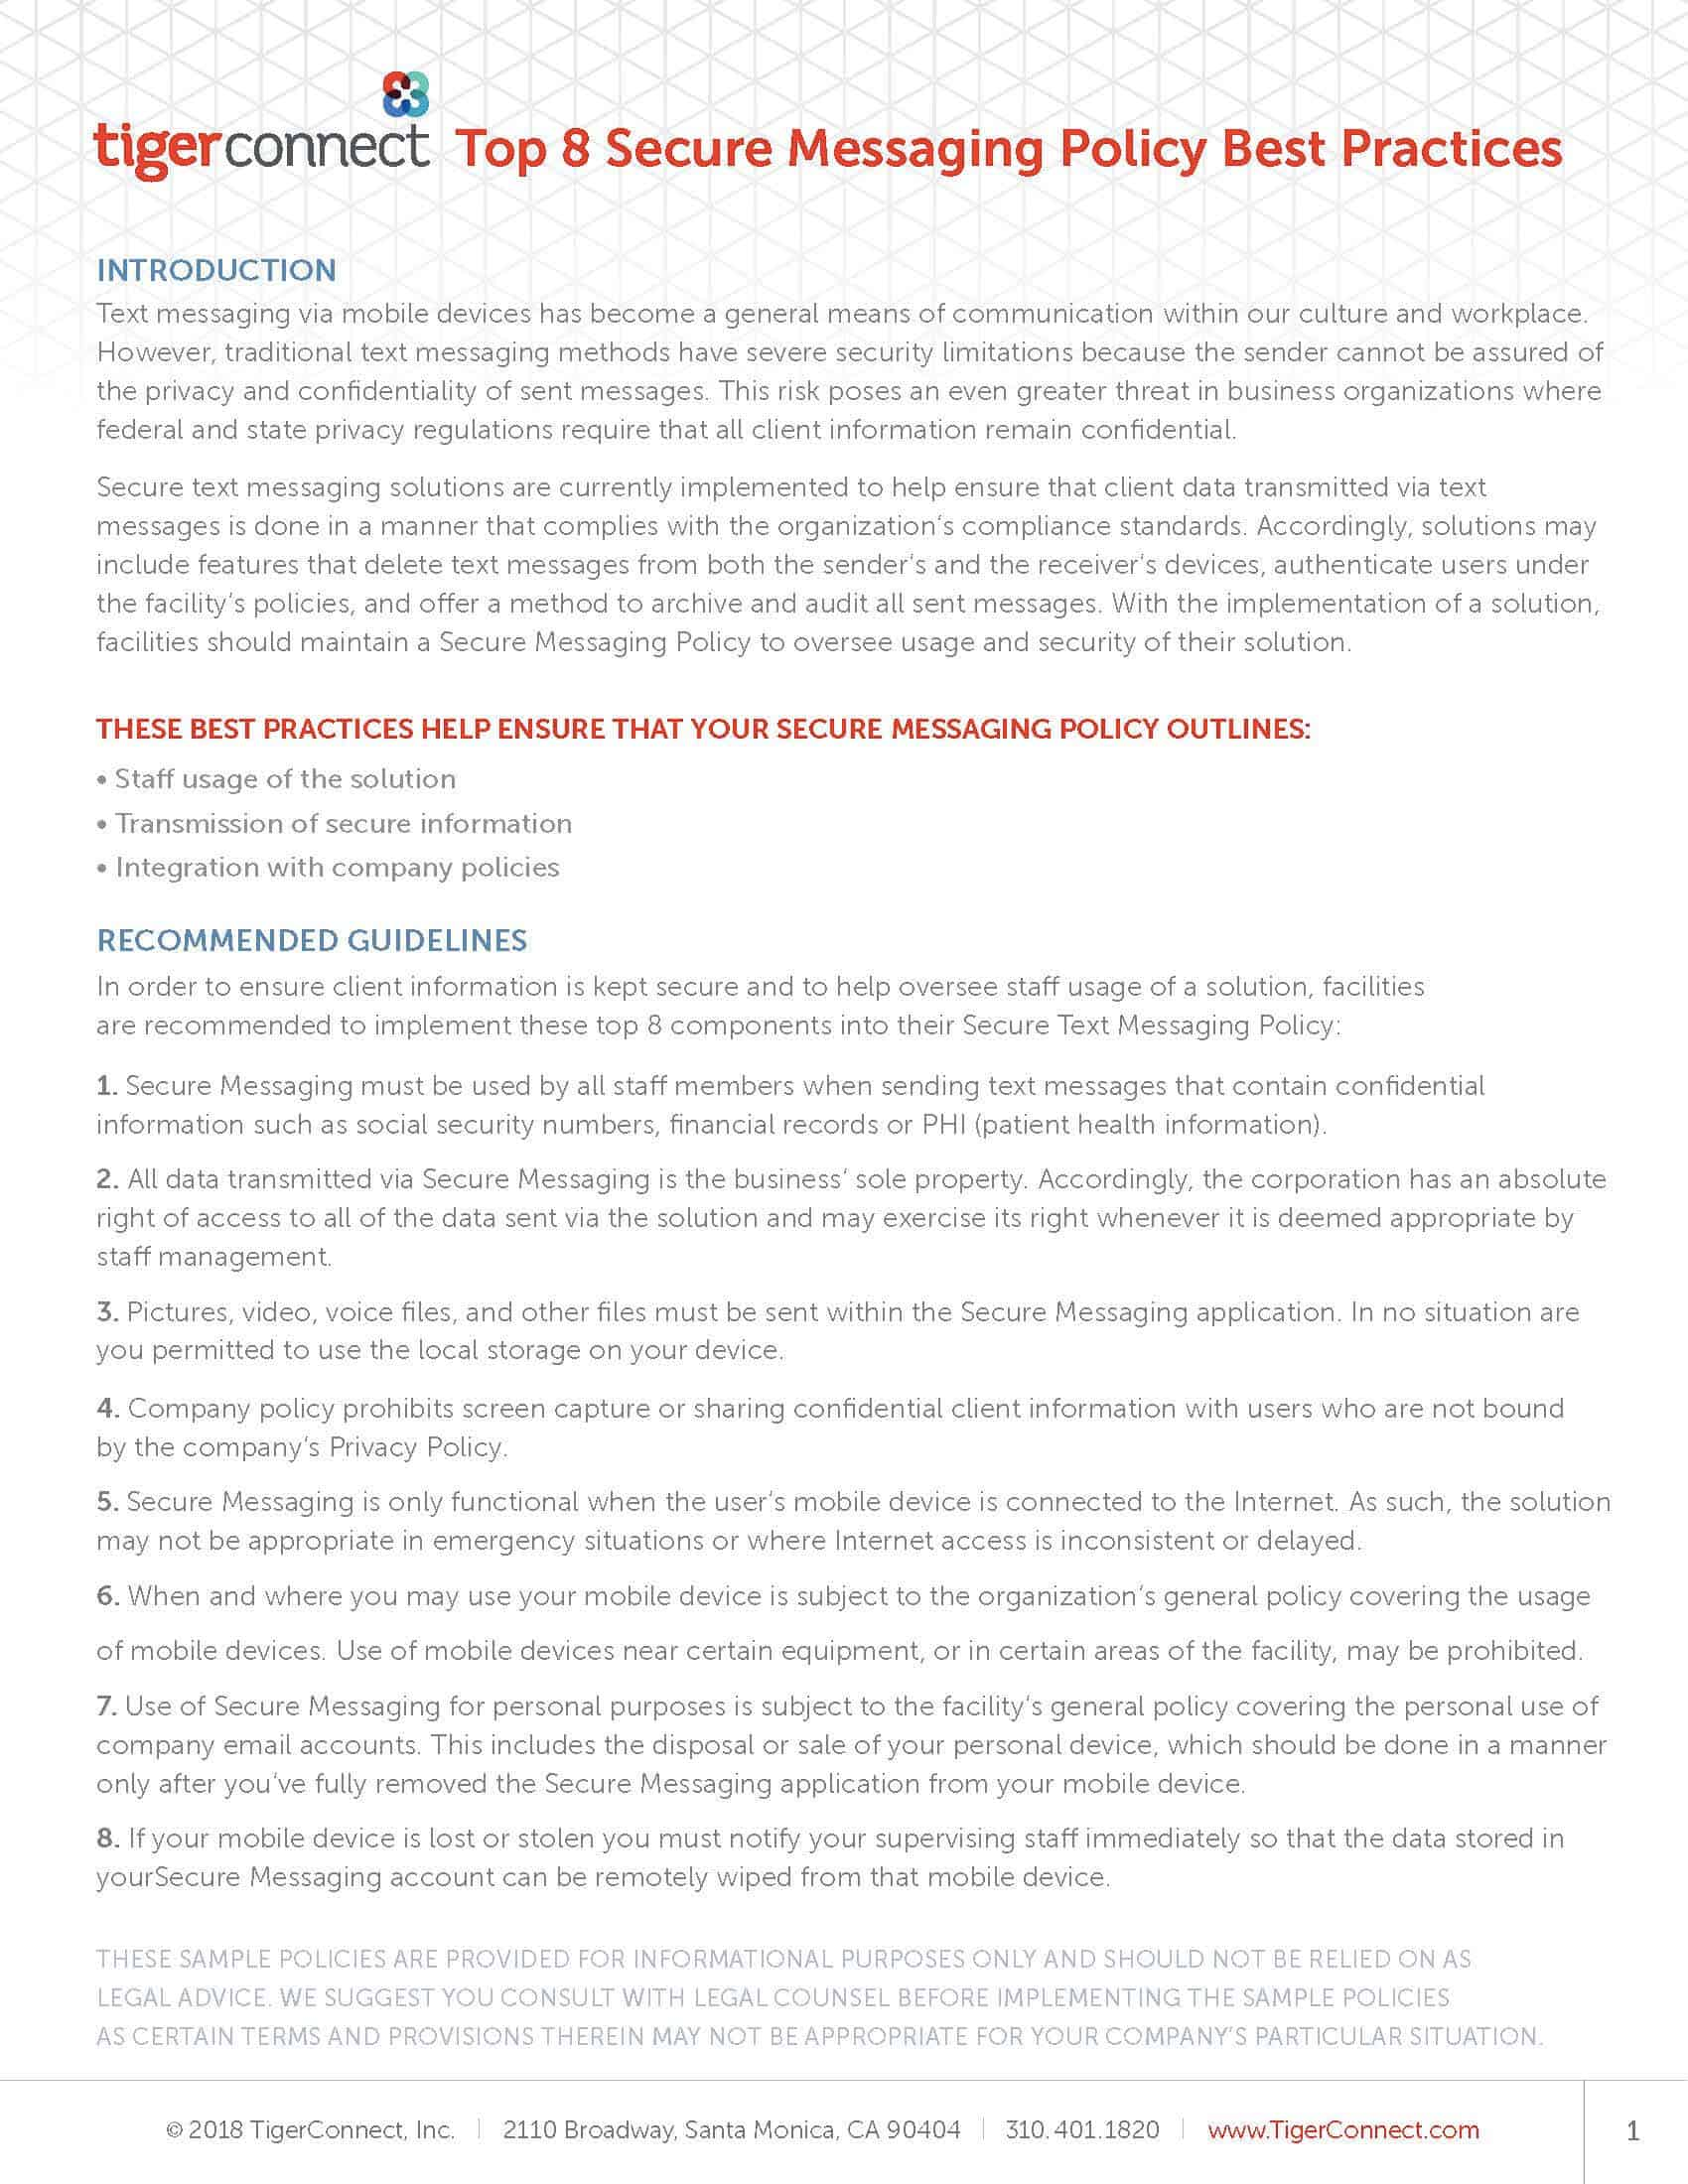 Top 8 Best Practices for Secure Messaging Datasheet Preview